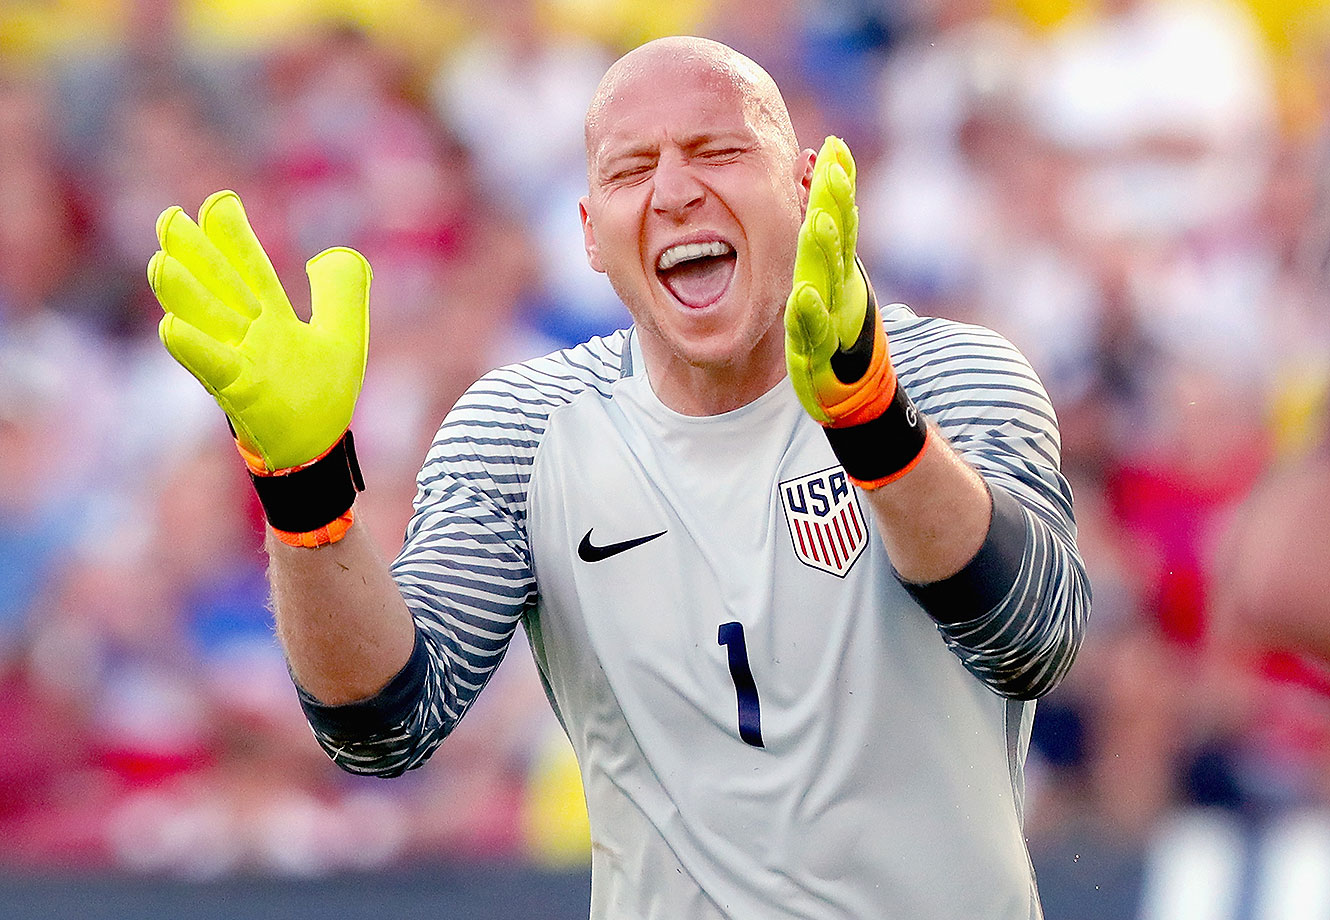 Brad Guzman #1 of the United States reacts after making a save against Ecuador in the first half during an International Friendly match at Toyota Stadium on May 25, 2016 in Frisco, Texas.